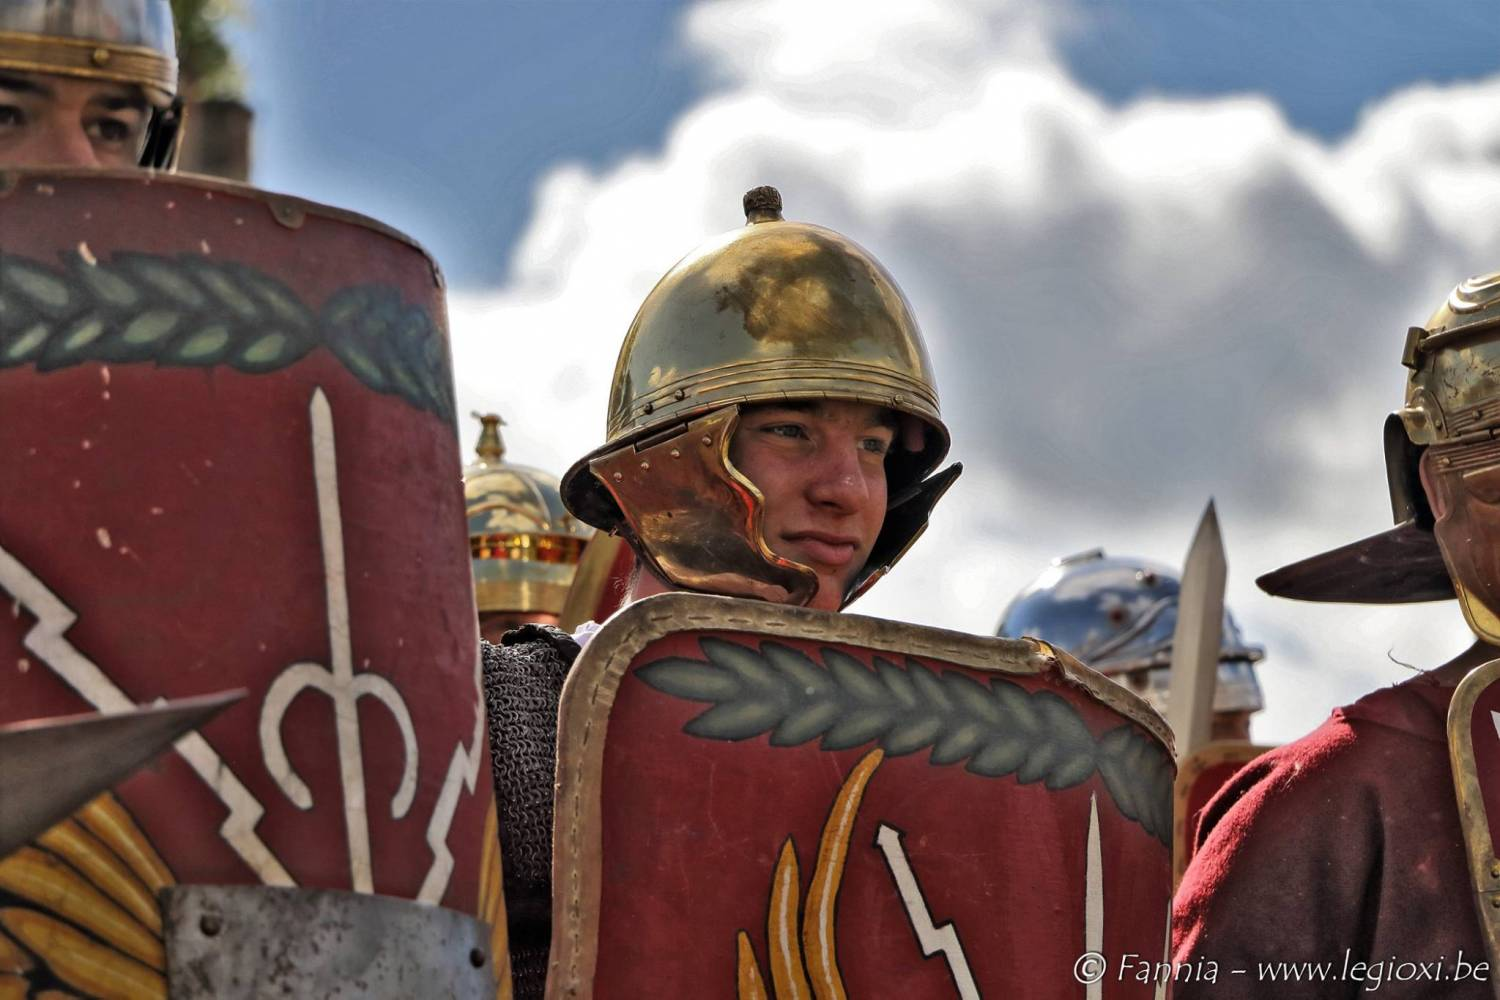 Roman legionairy lining up for the first time